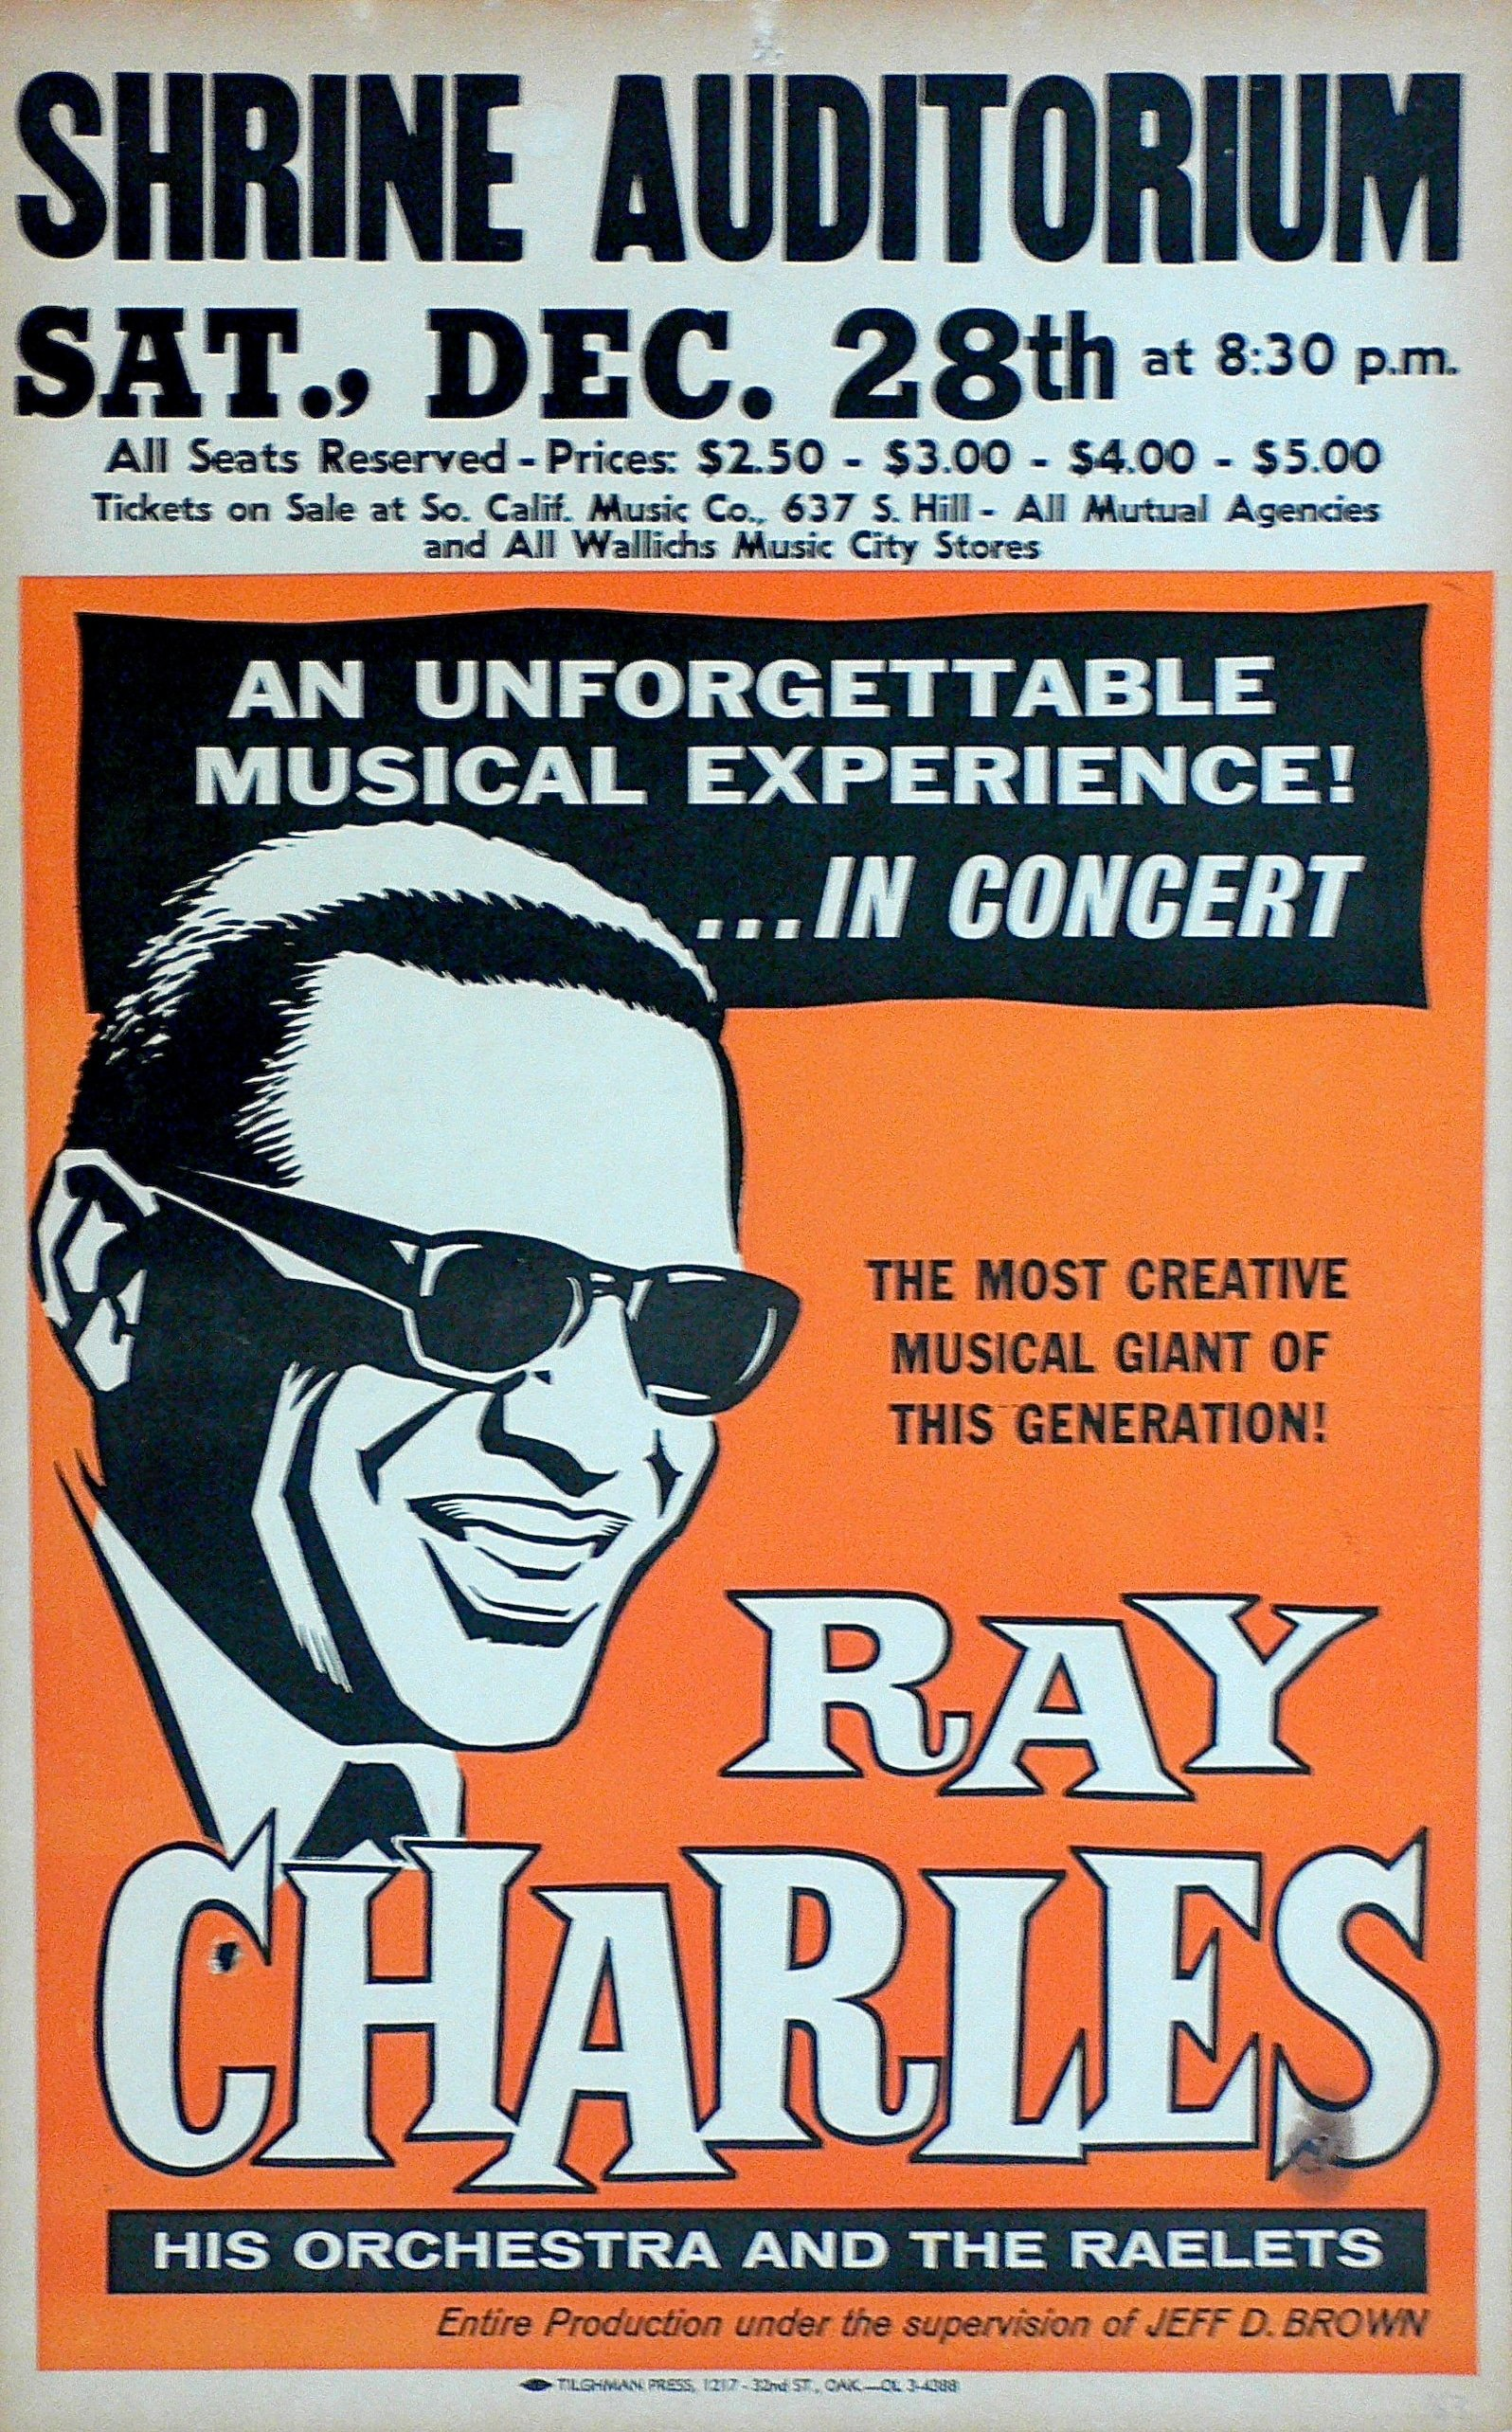 Griffen 111811 pro Smoking Ad further Ray Charles 1963 Los Angeles Boxing Style Concert Poster additionally Skidz 1991 furthermore 471048442260424371 besides Eniko Mihalik. on advertising of the 1950s